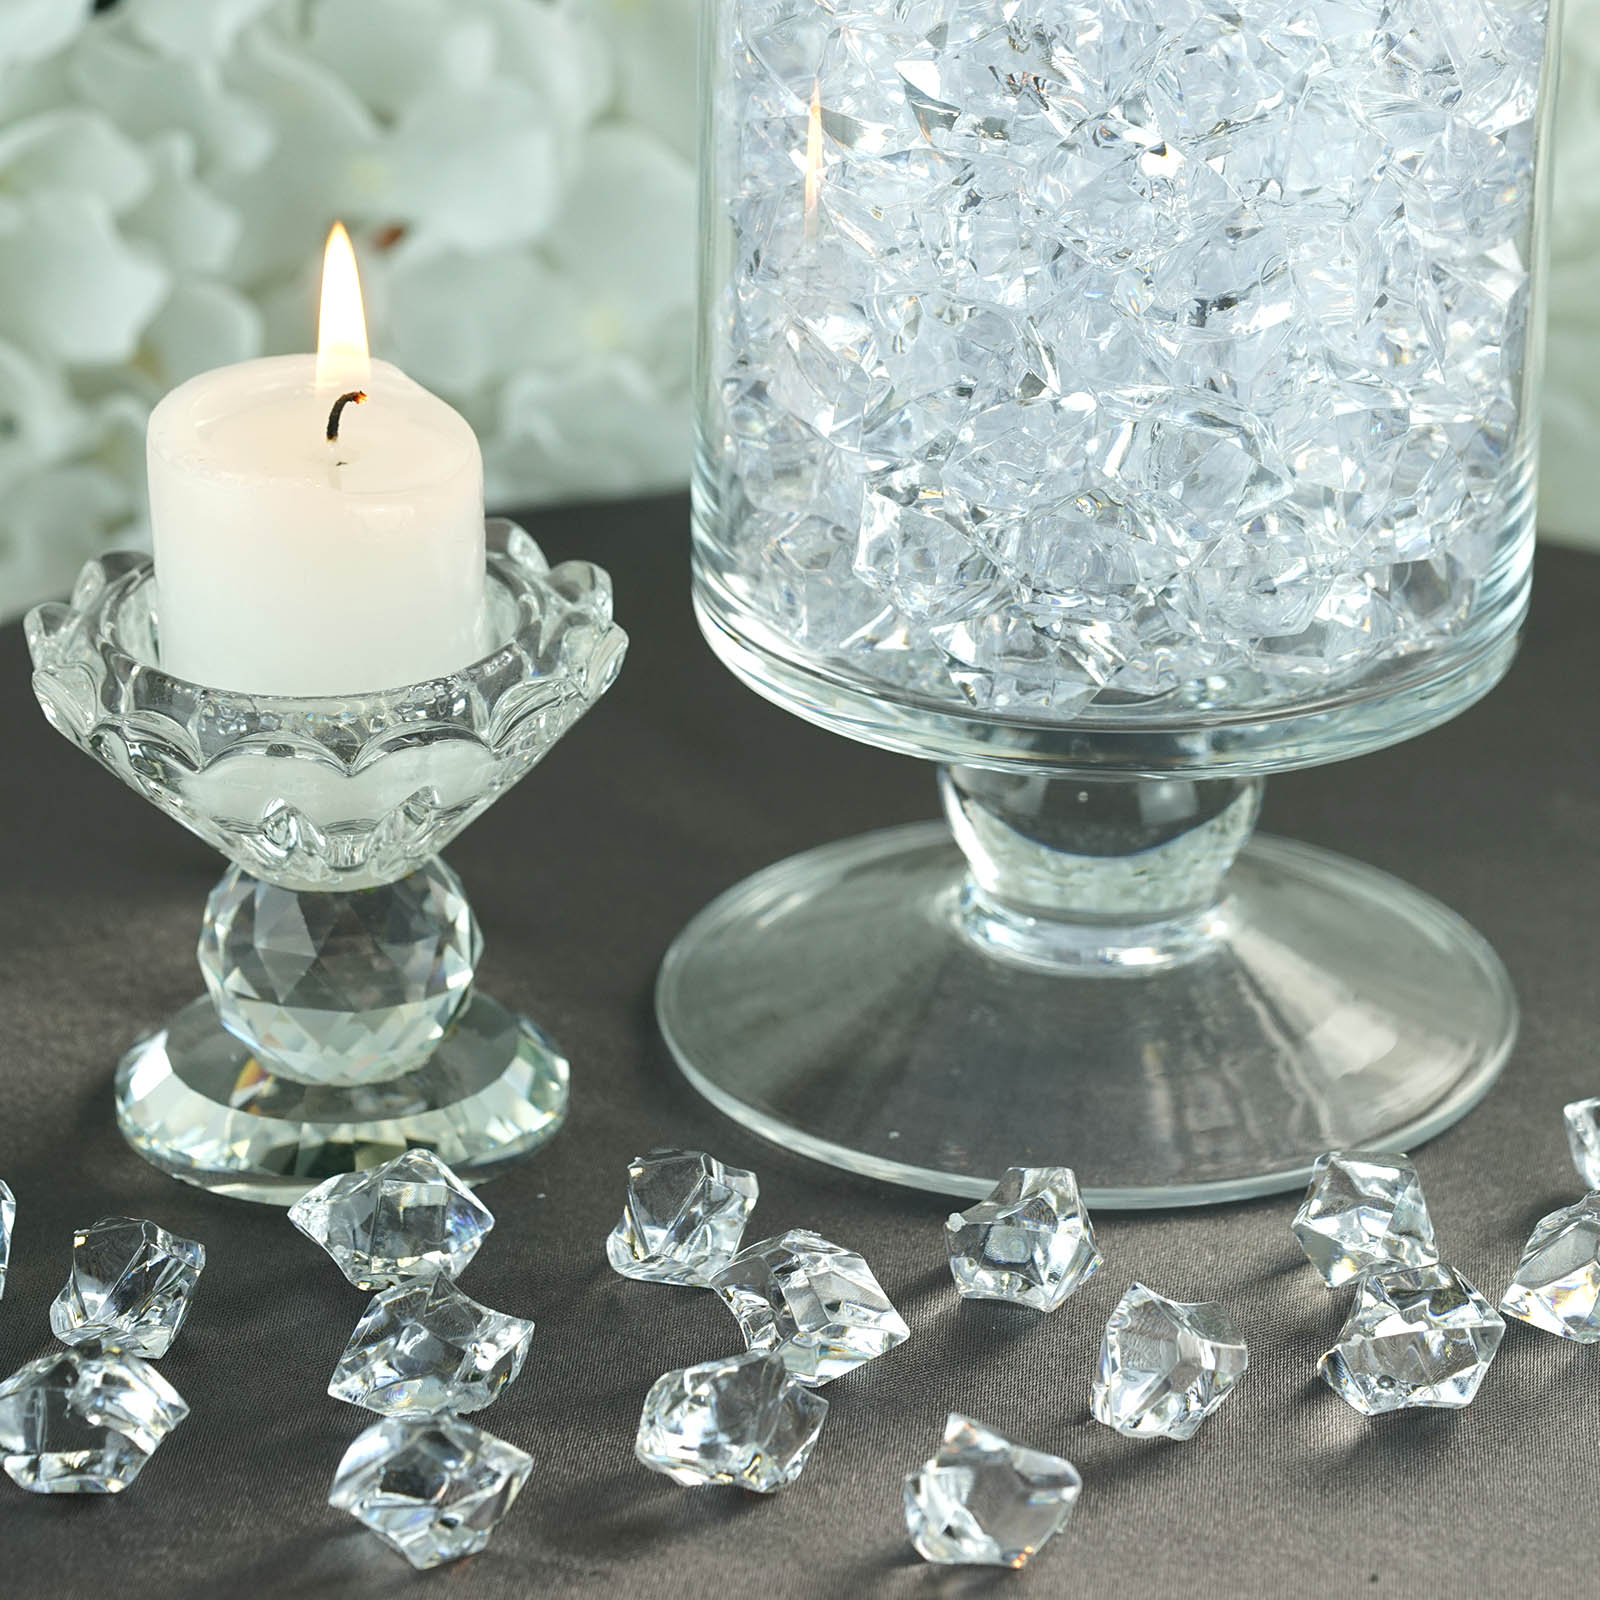 300-Acrylic-Ice-CRYSTAL-LIKE-Pieces-Wedding-Centerpieces-Decorations-Supplies thumbnail 19